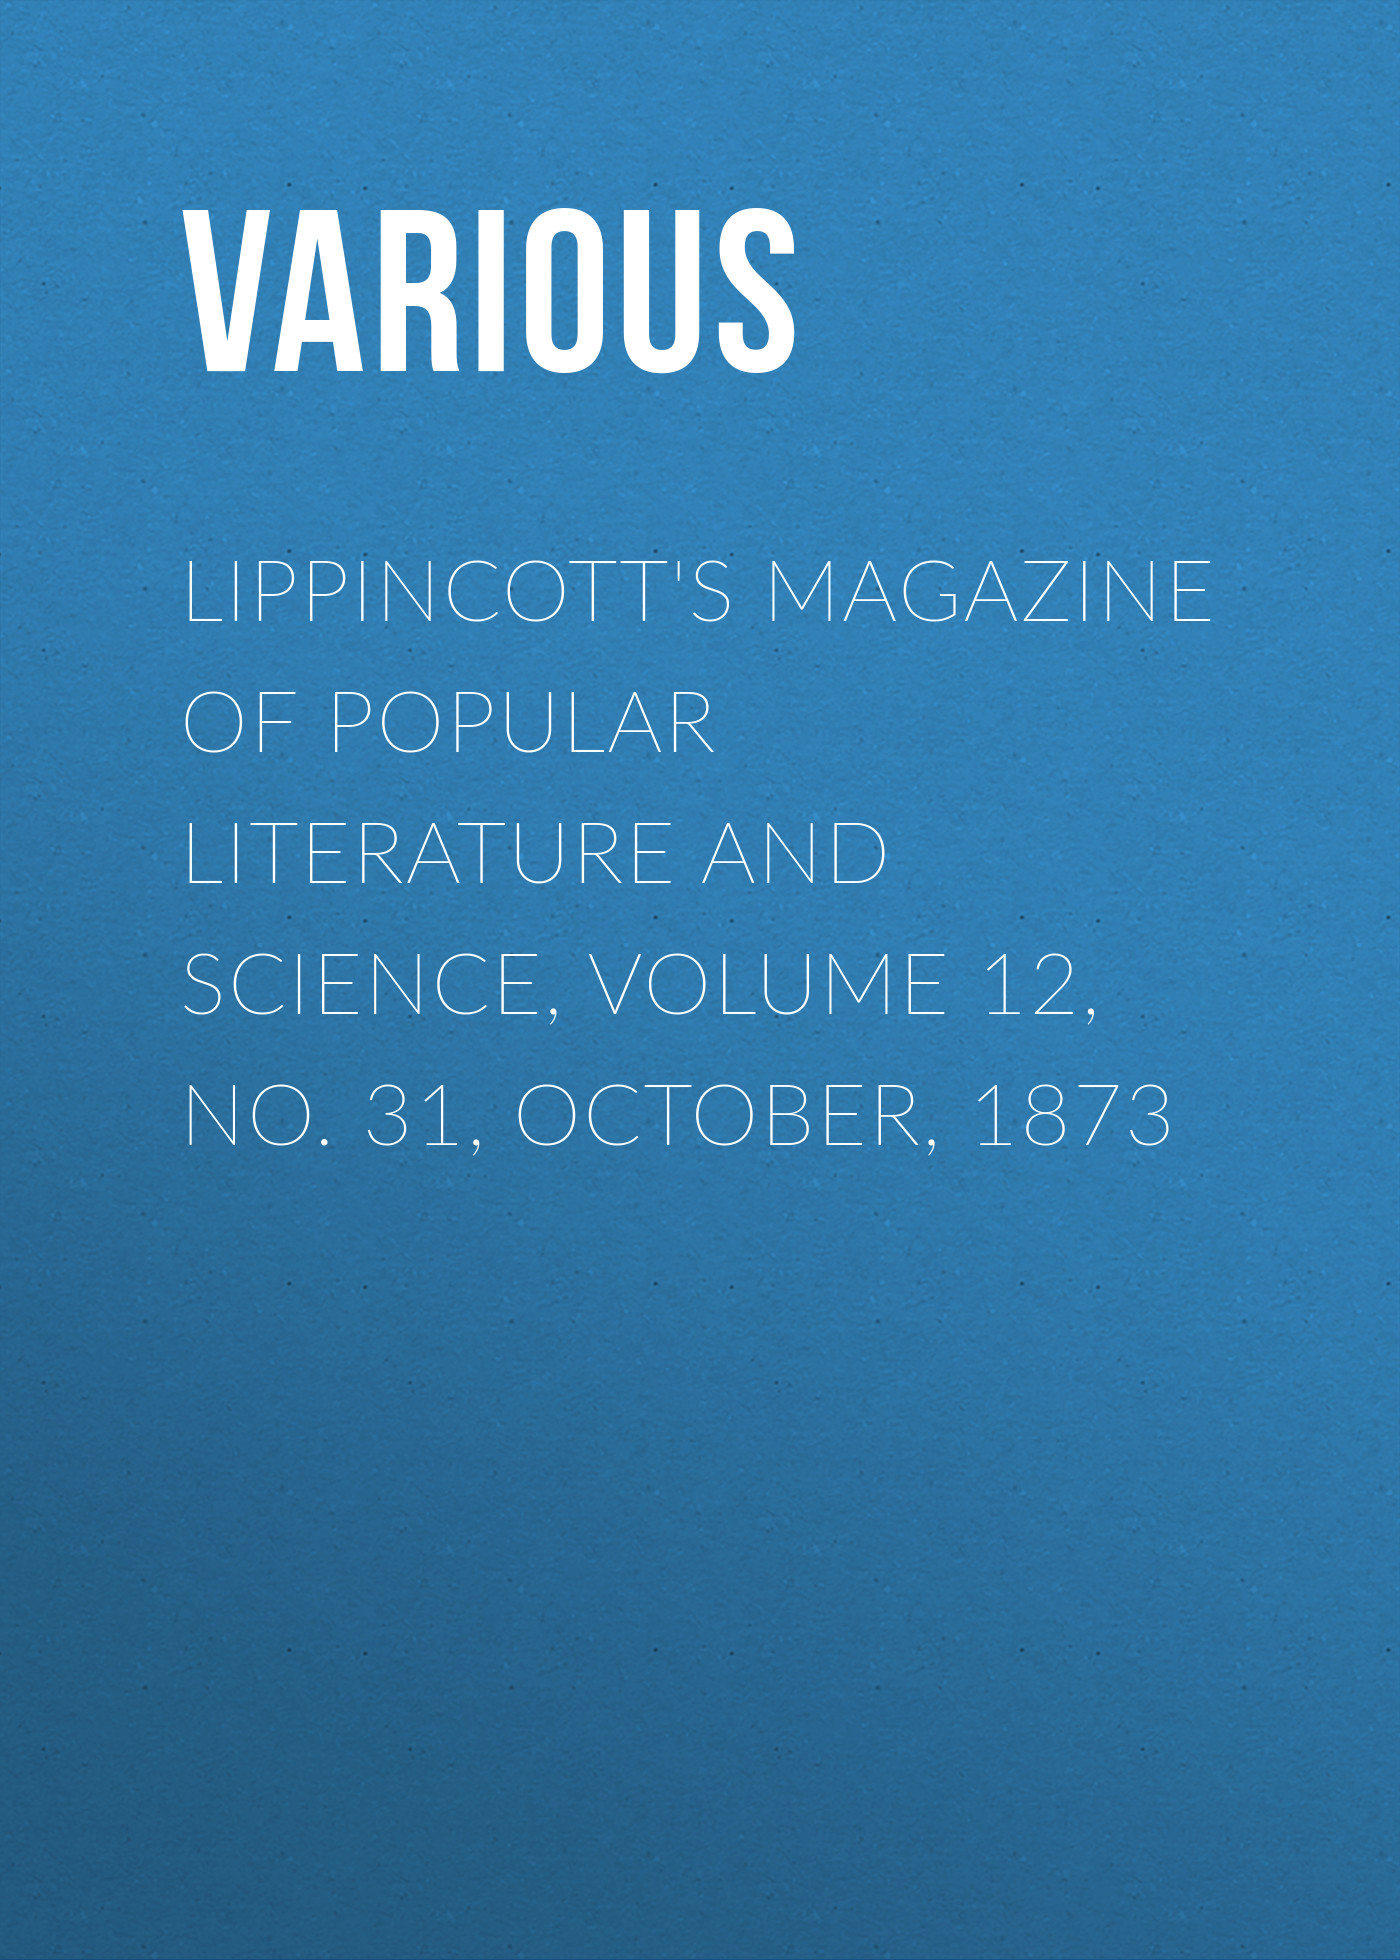 Various Lippincott's Magazine of Popular Literature and Science, Volume 12, No. 31, October, 1873